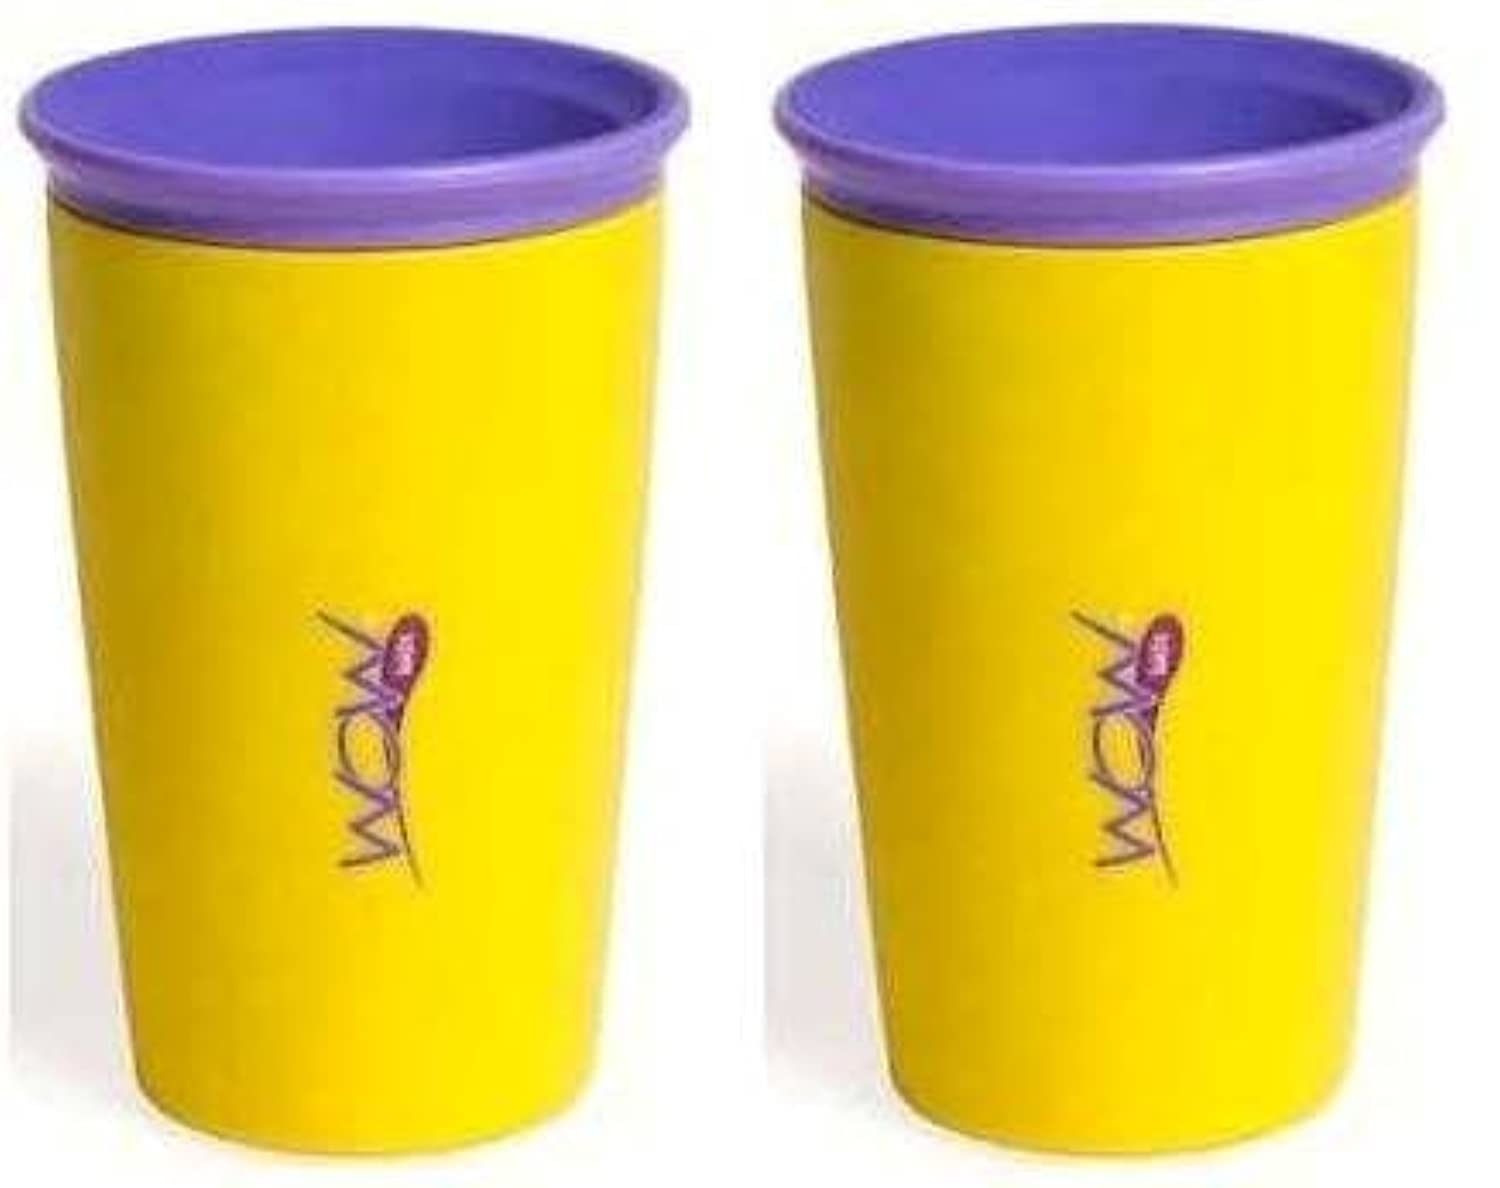 Wow Cup for Kids 360 Spill Free Drinking Cup - 9 Oz - Color: Yellow - 2 Count by Wow Gear